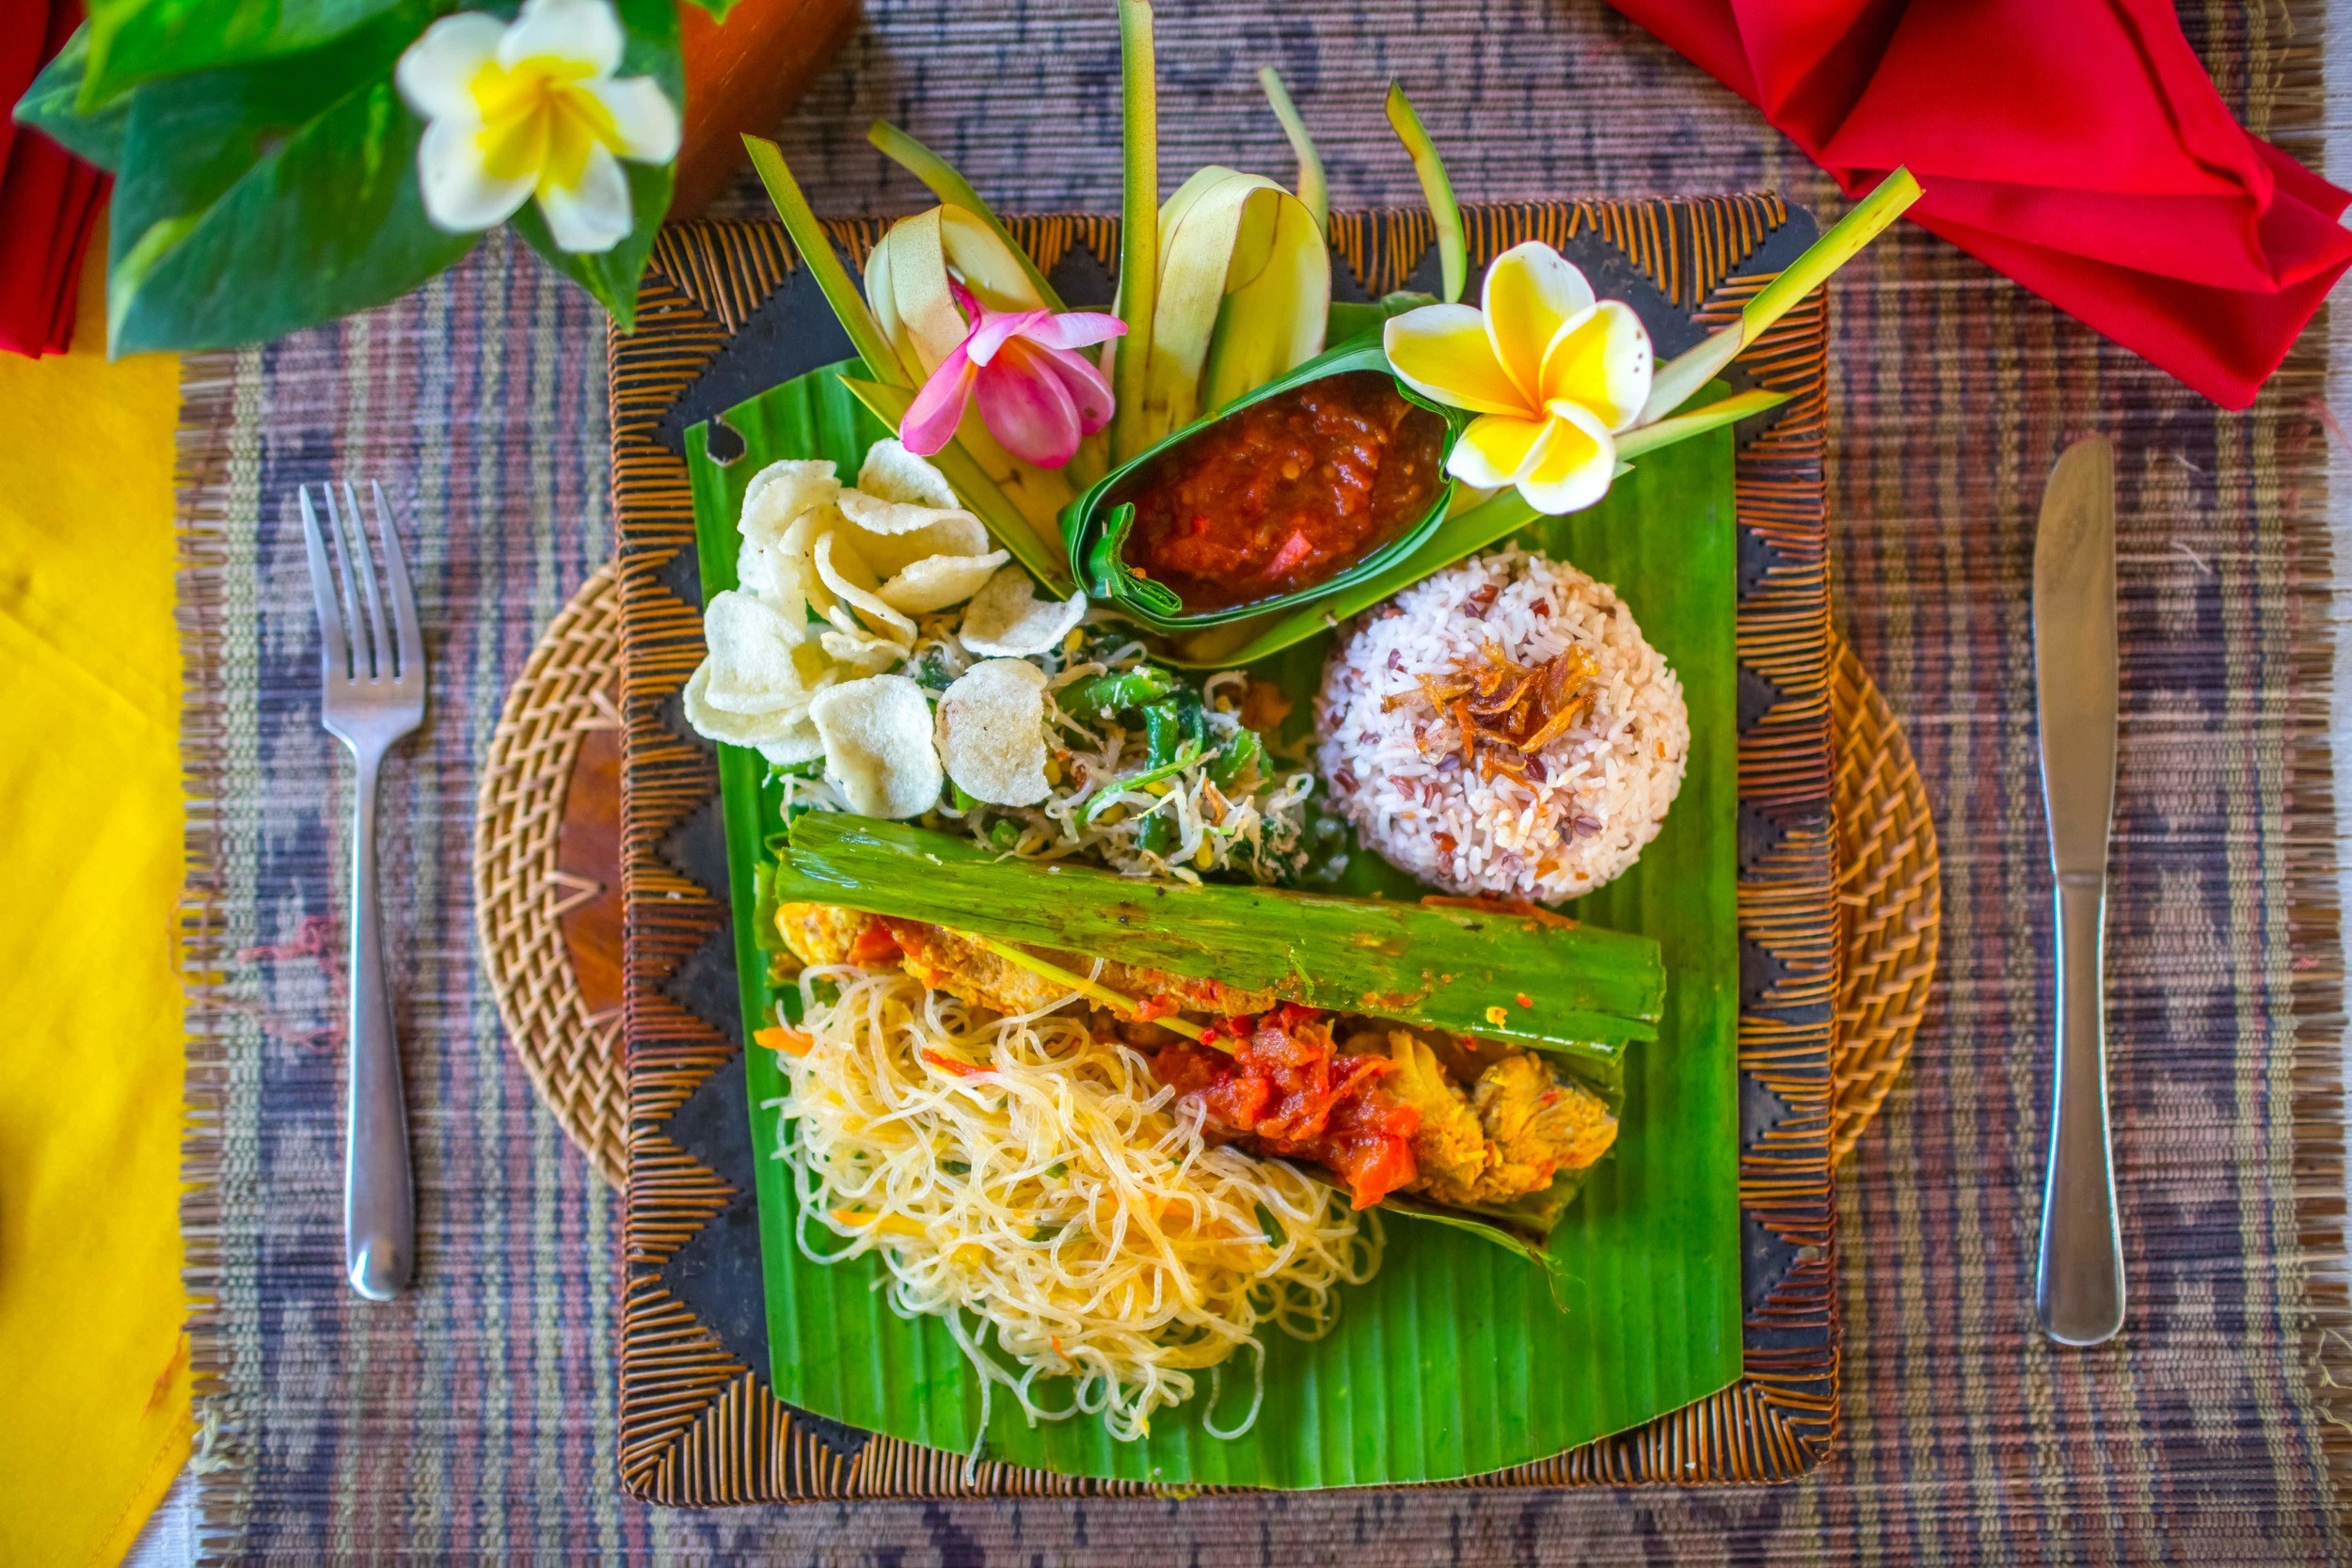 how much does food cost in Bali